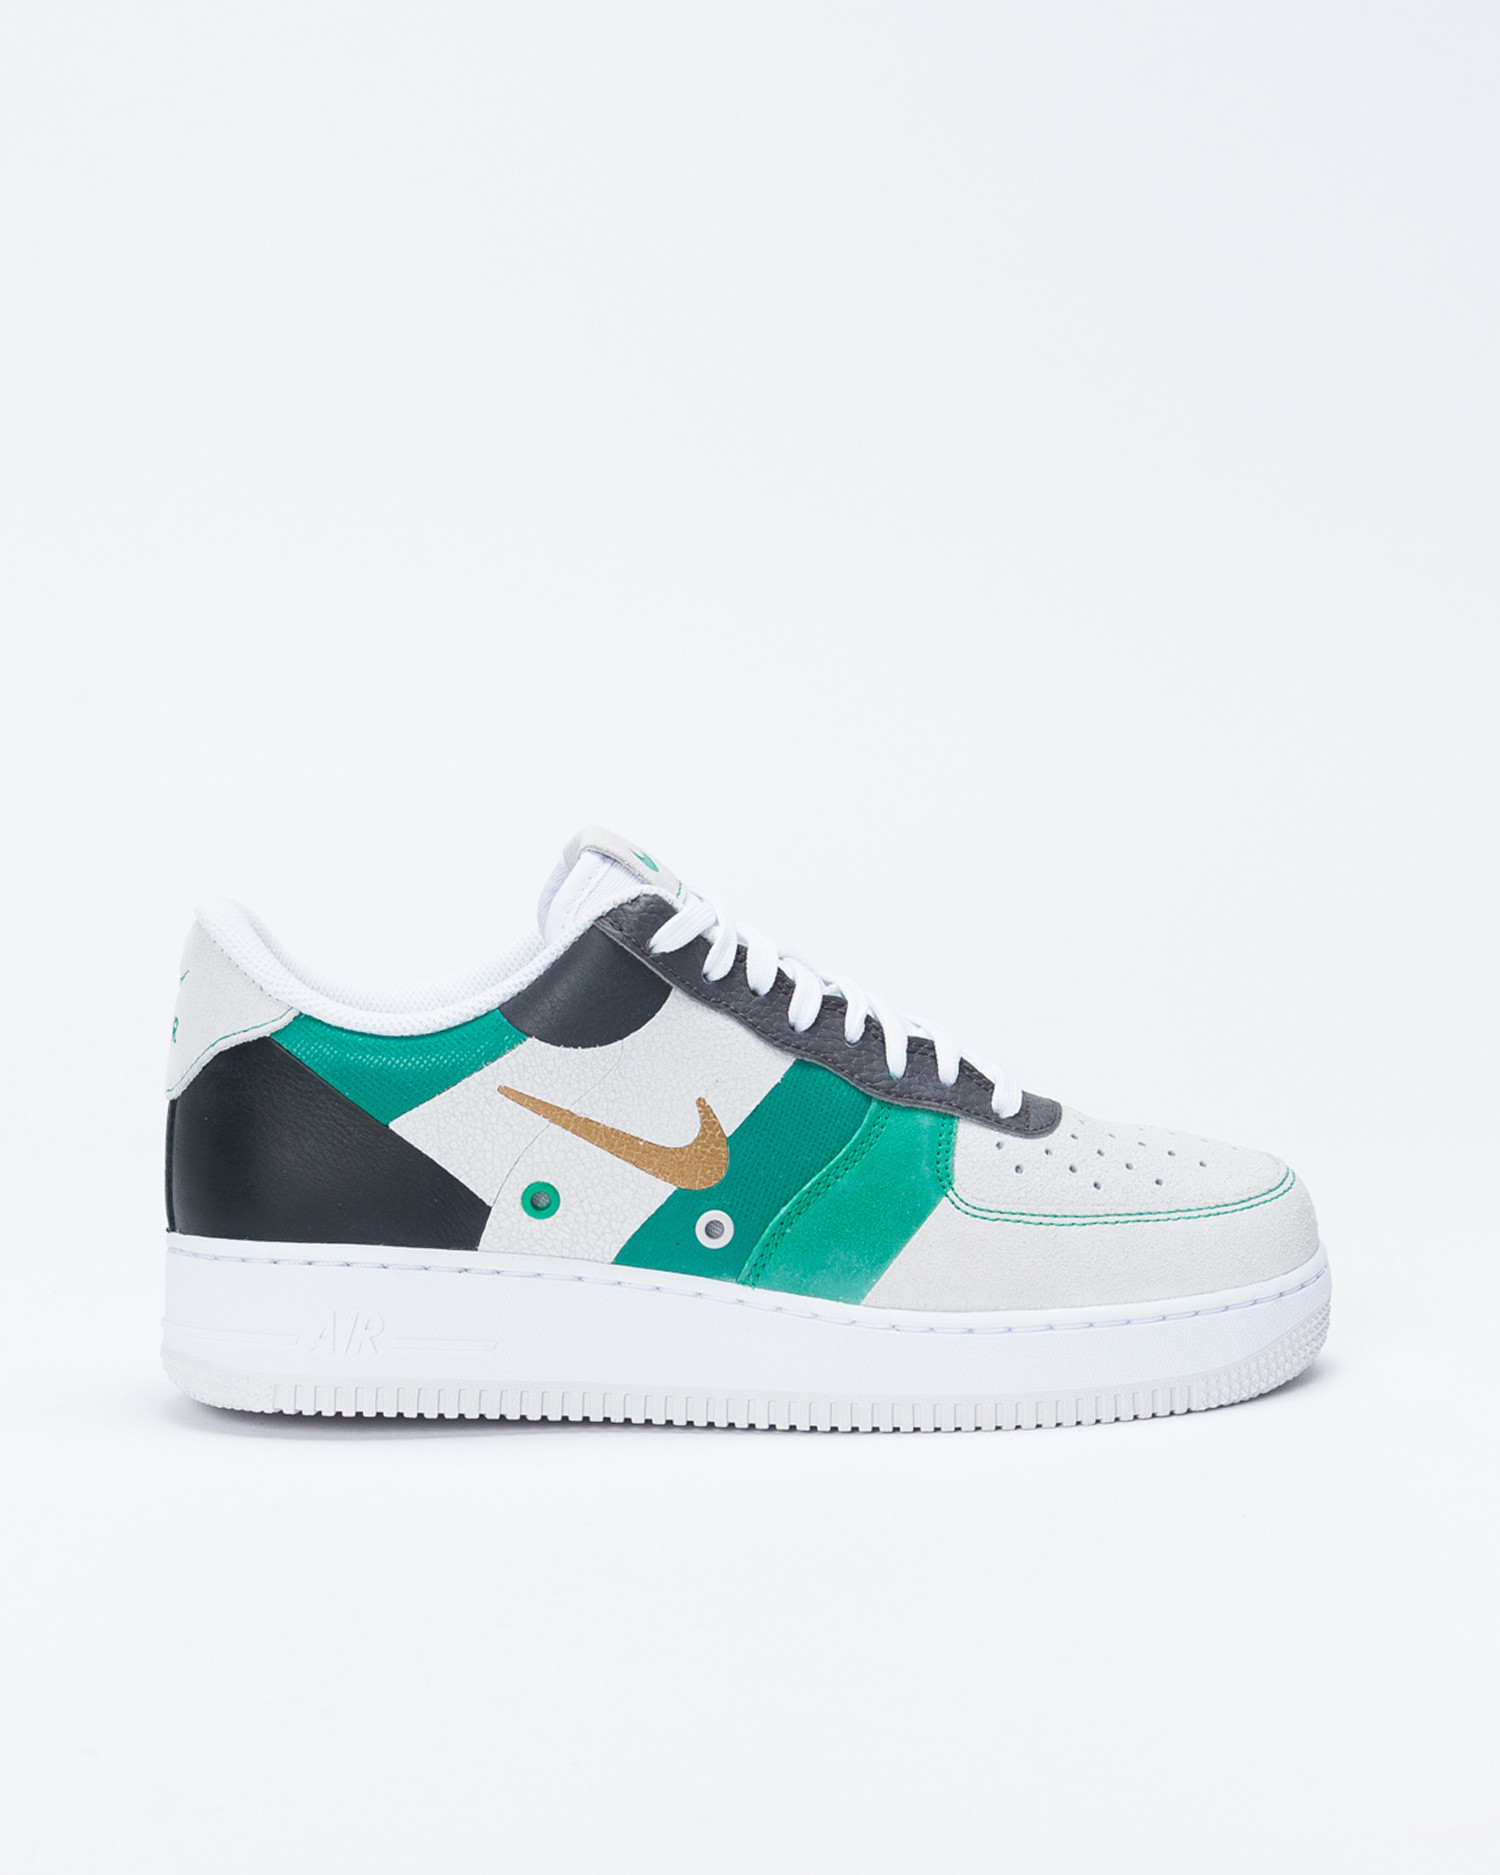 nouvelle arrivee fe3ed 83db2 Nike Air Force 1'07 Premium White/Metallic gold/Black/Vast grey